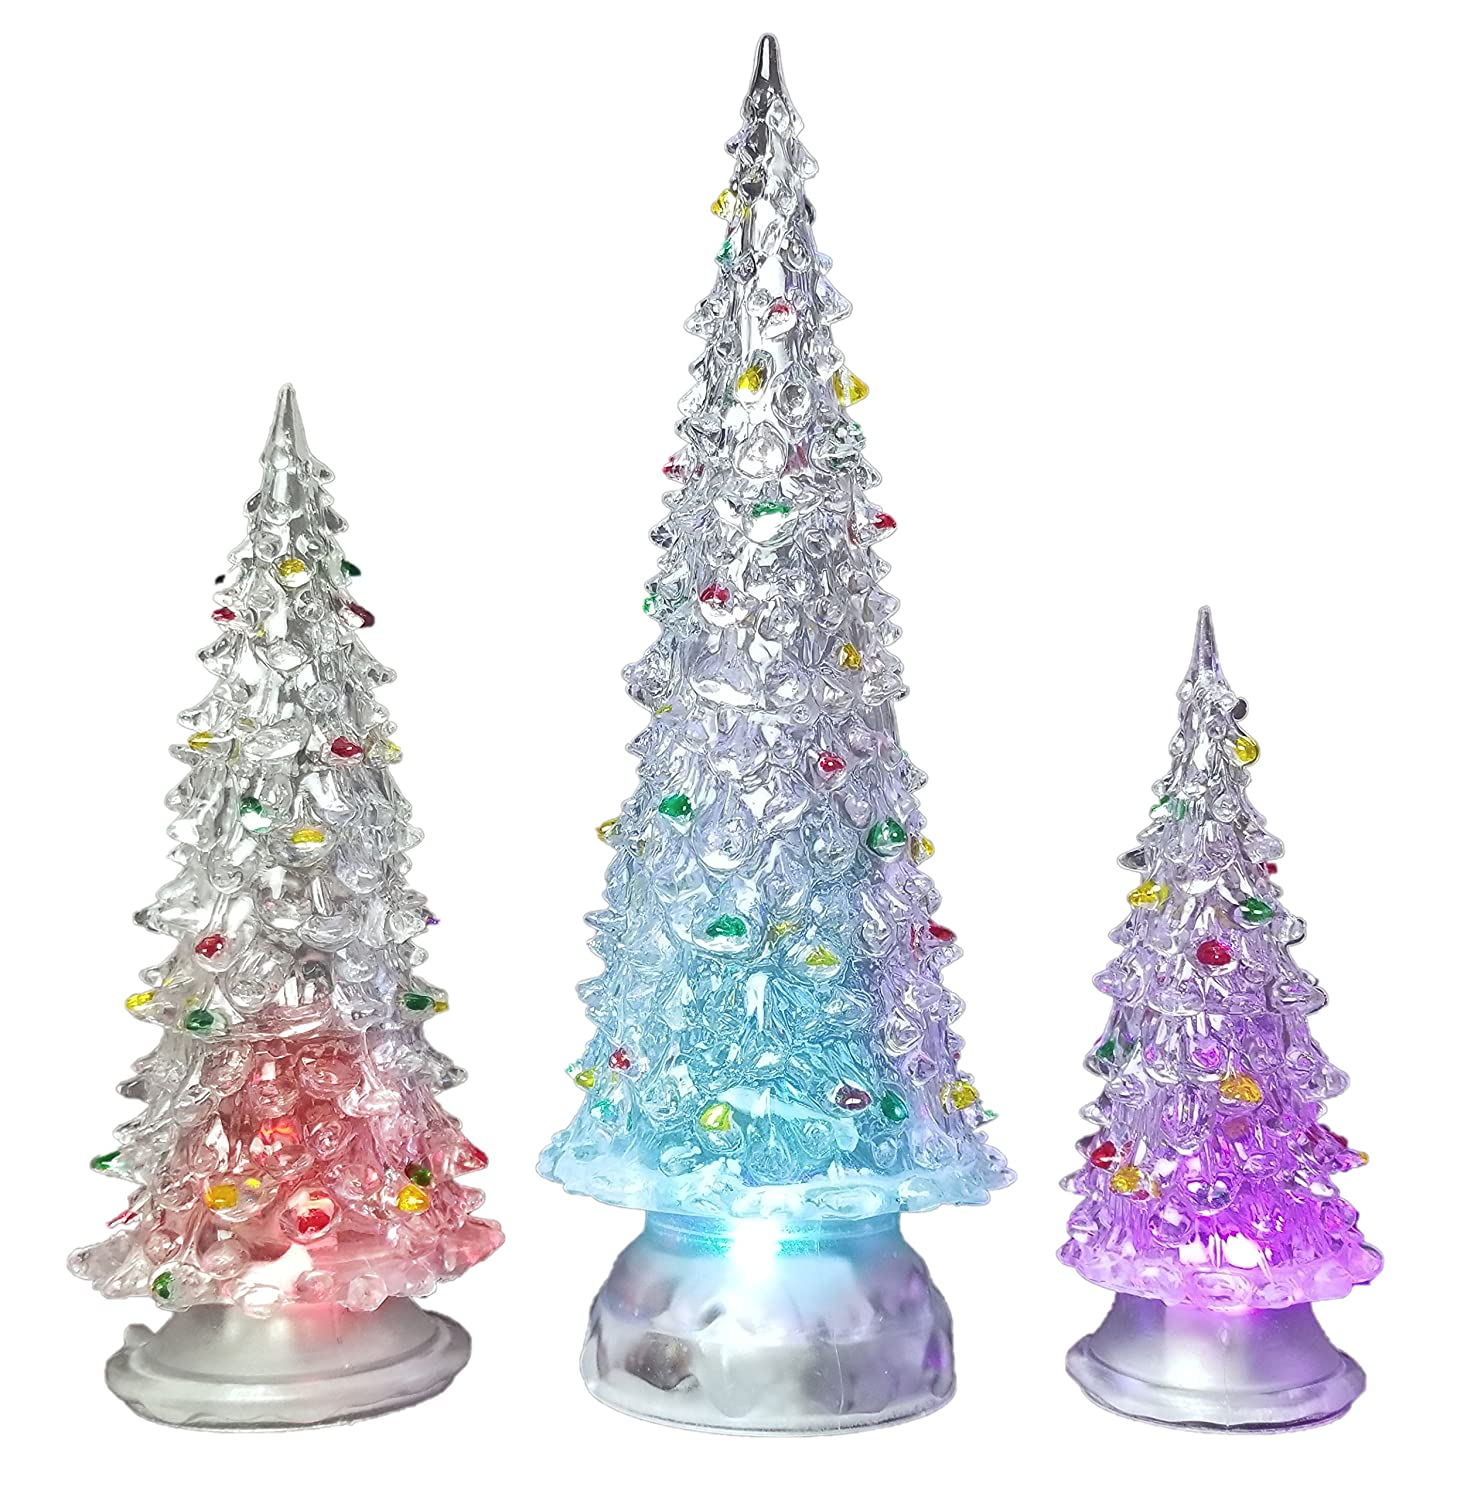 Banberry Designs Christmas Tree Led Set Of 3 Acylic Xmas Trees With Painted Colorful Ornaments Coloring Changing Tabletop Tree Decorations